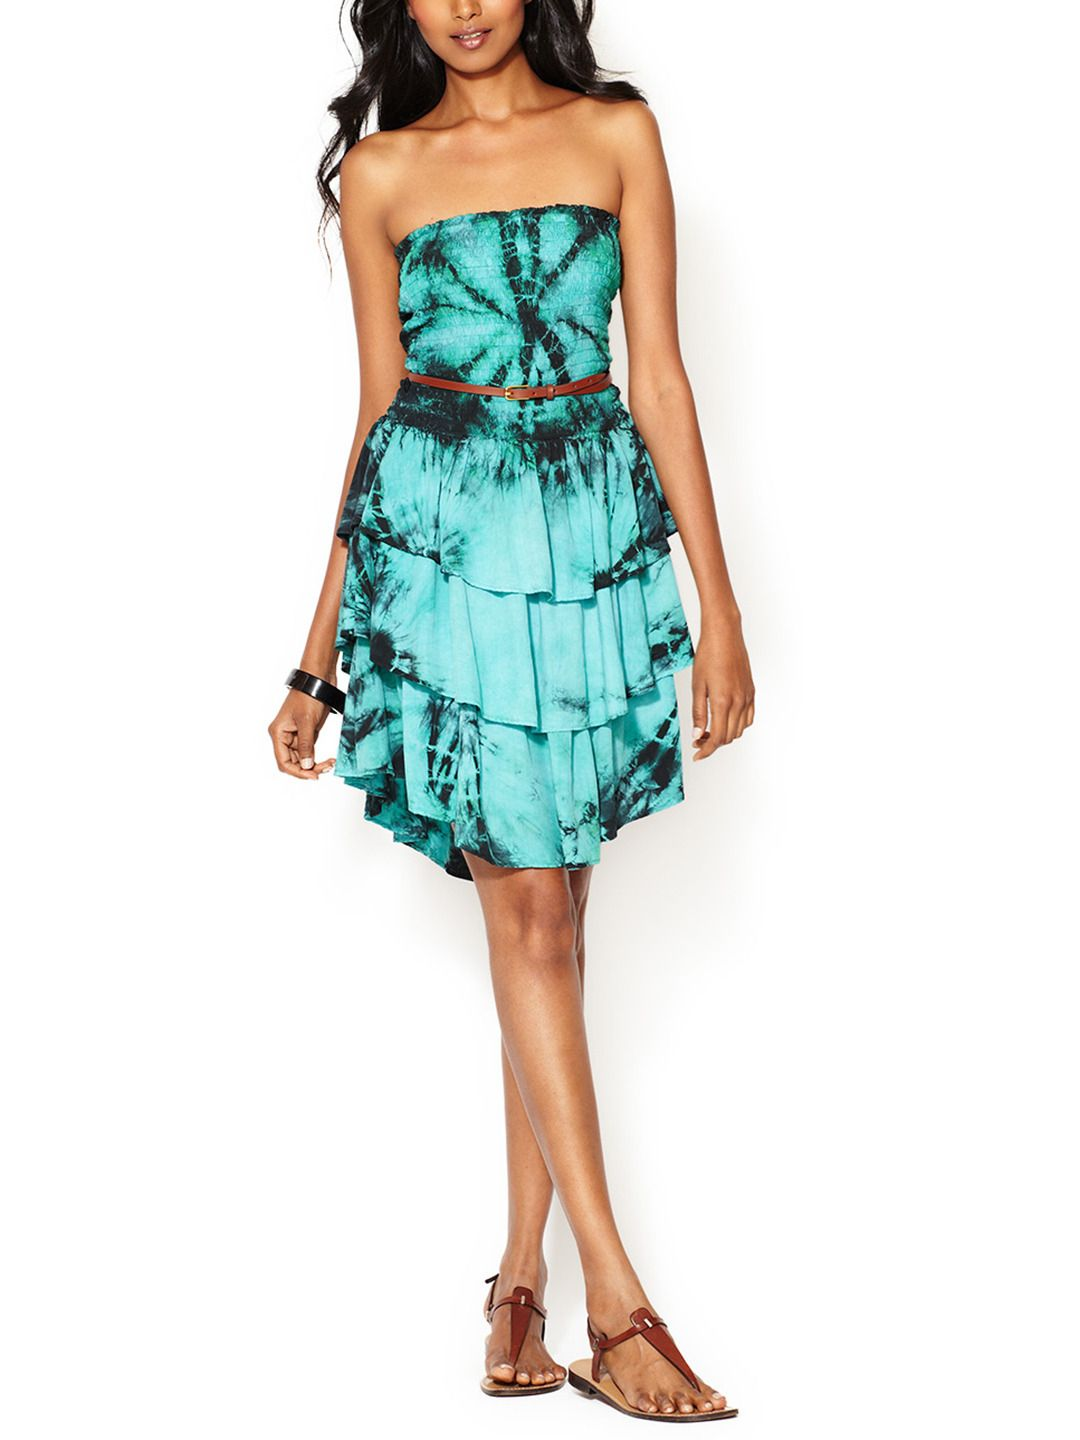 Printed Ruffle Strapless Dress From Spring Getaway Must Have Dresses On Gilt Strapless Ruffle Dress Clothes For Women Dresses [ 1440 x 1080 Pixel ]